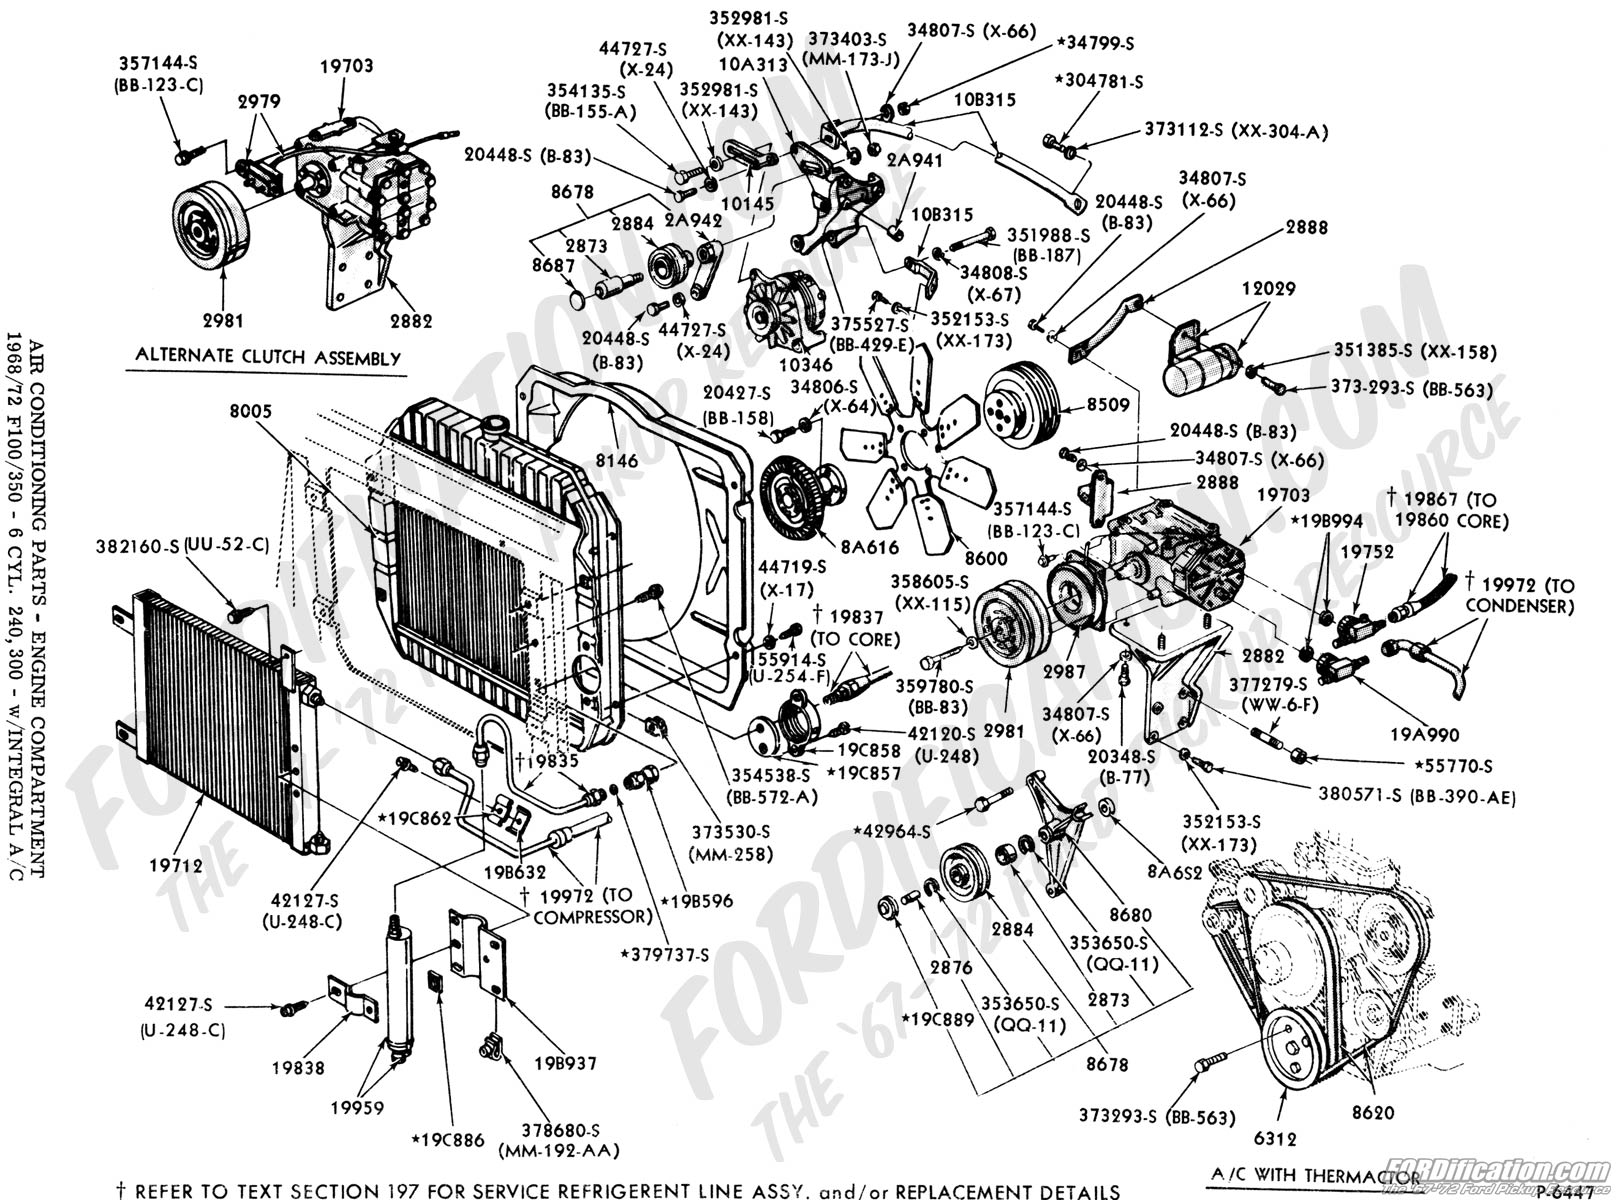 Schematics f on 2004 ford explorer air conditioning diagram